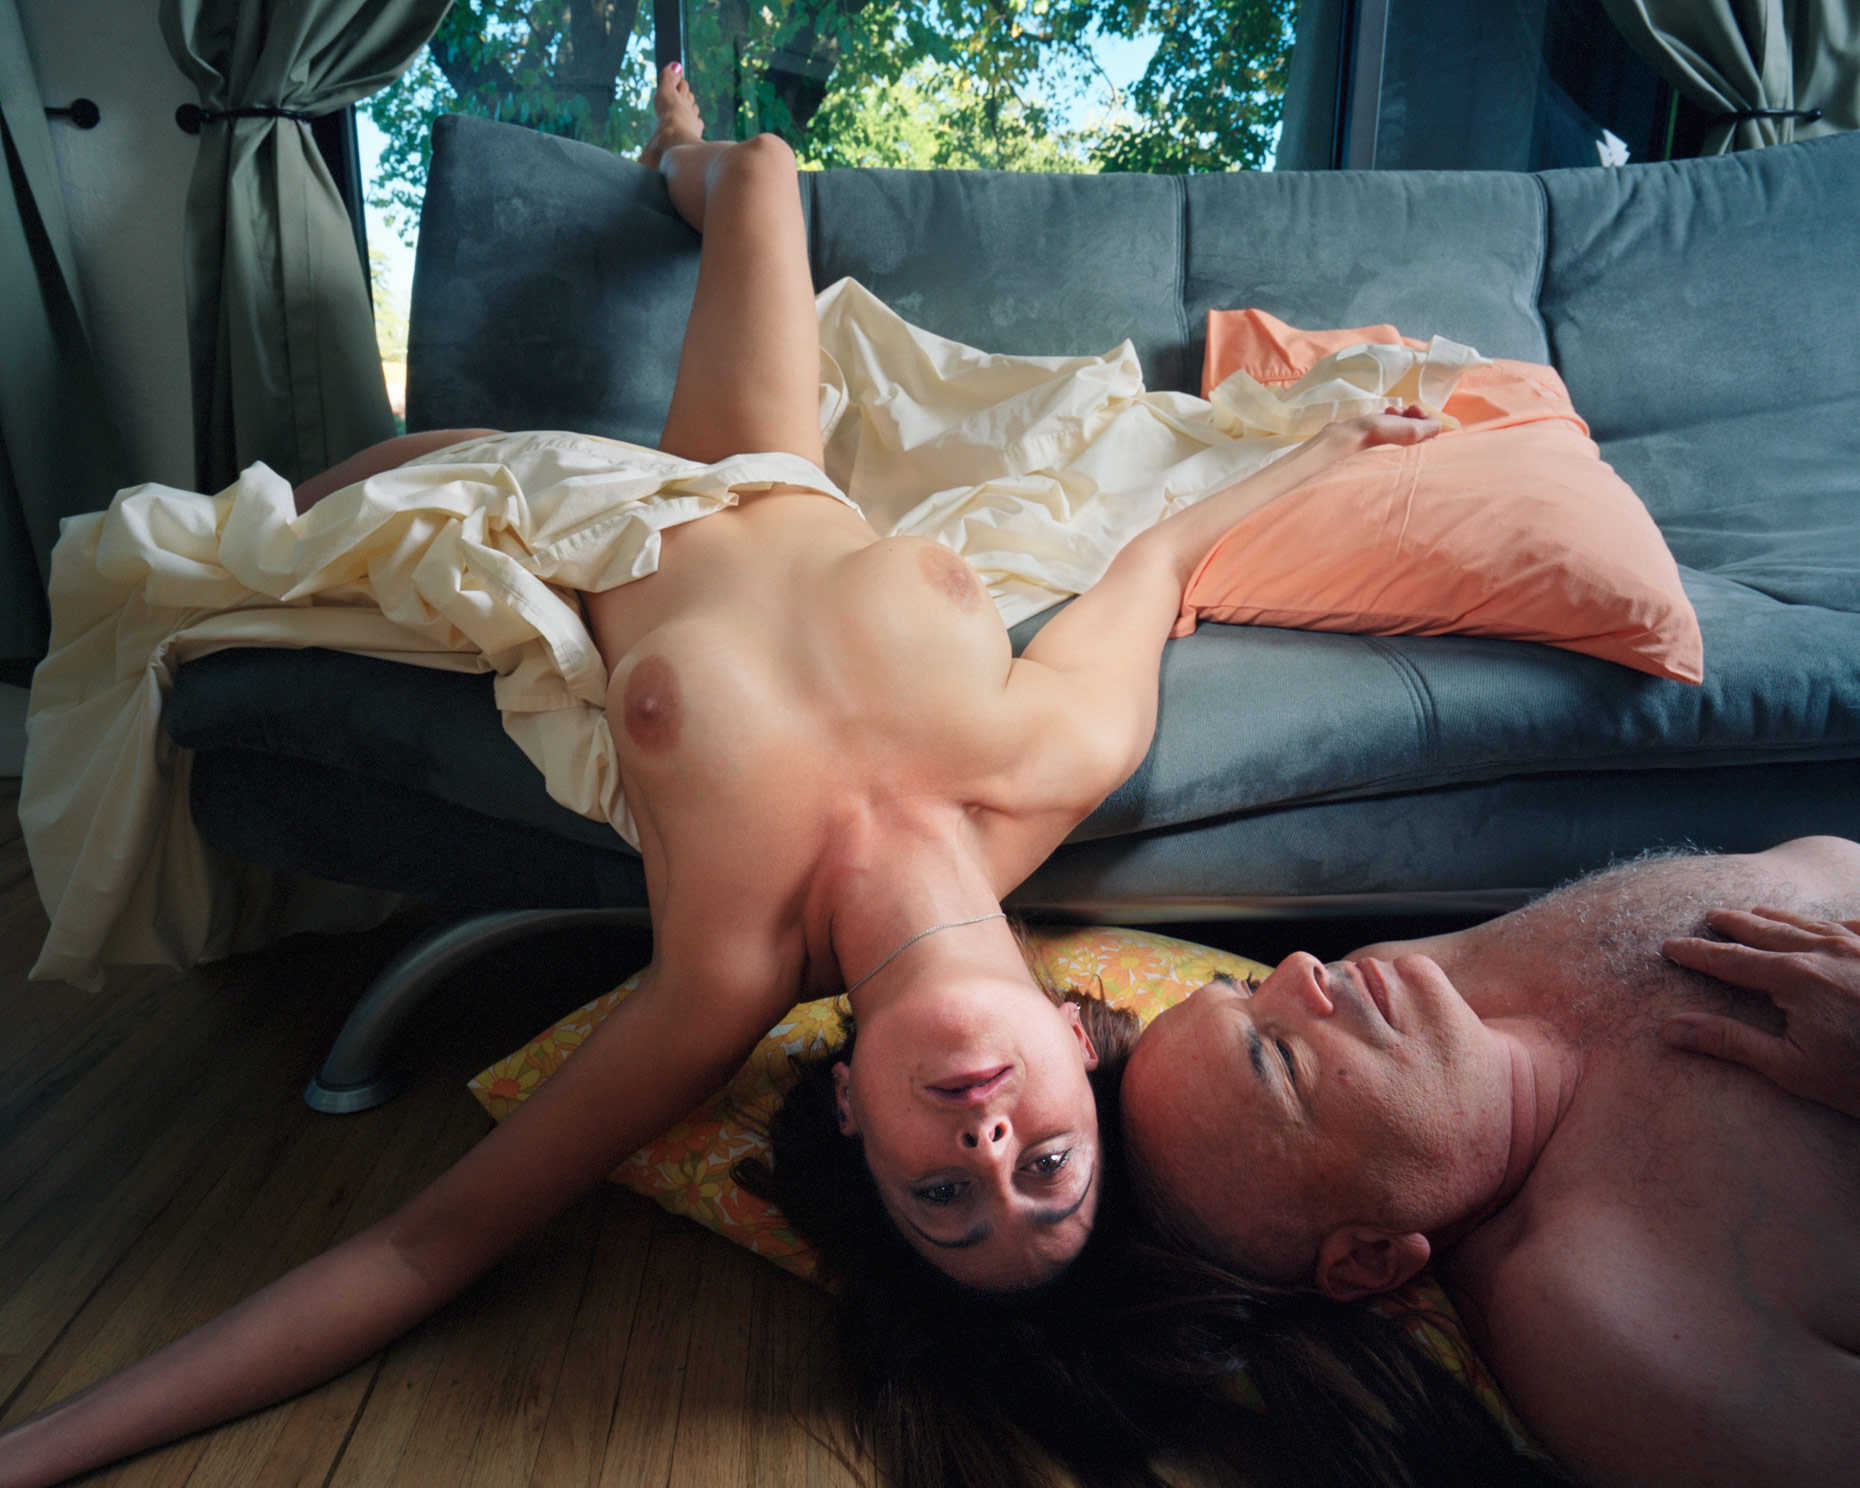 Celeste_Couch_1